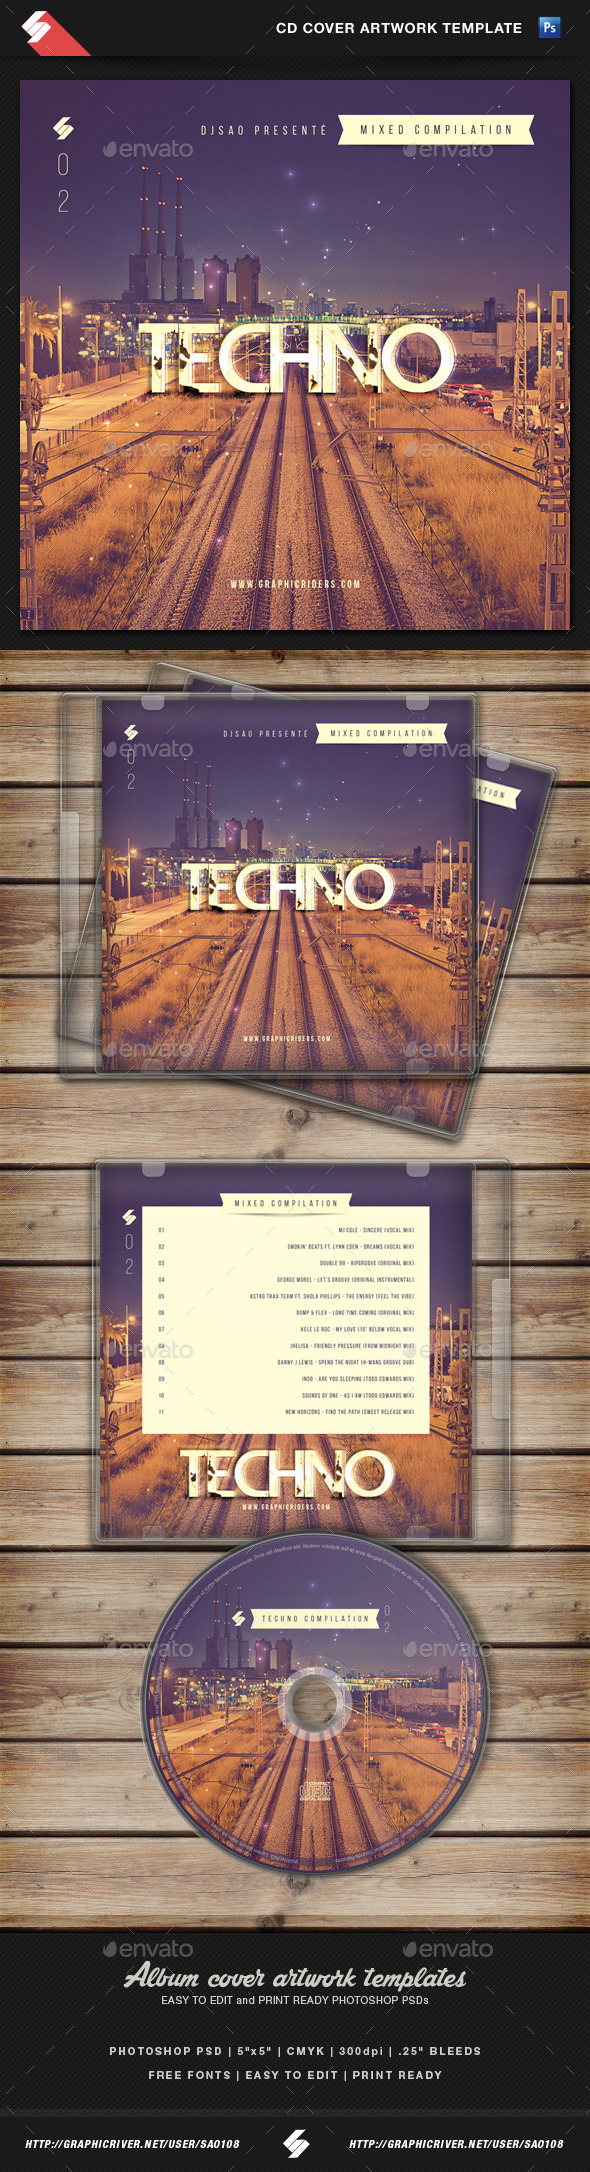 GraphicRiver Techno Mixed Compilation CD Cover Template 10937226